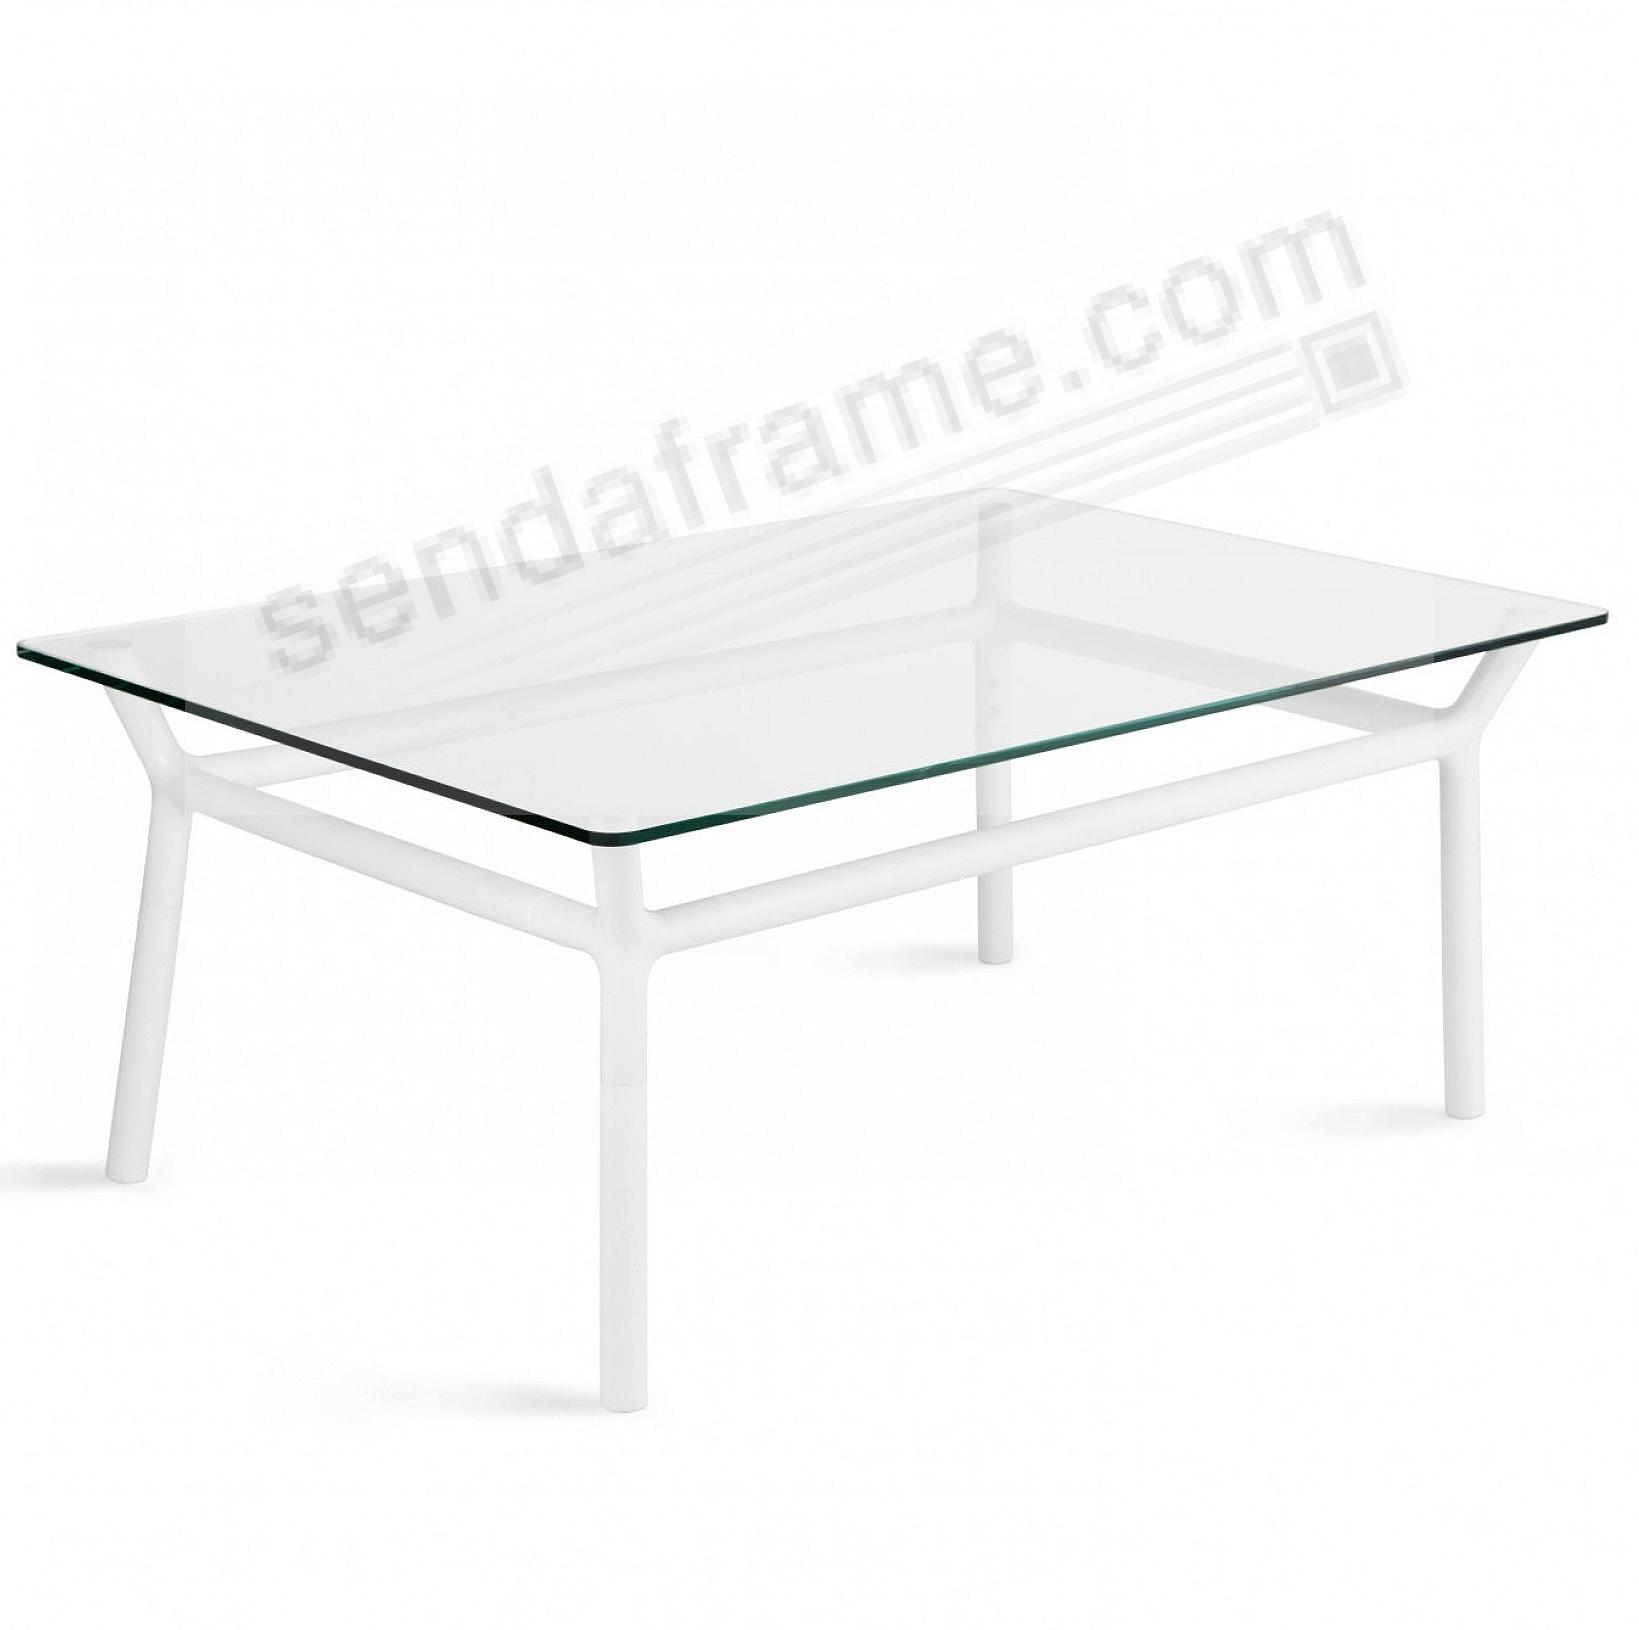 The Original konnect WHITE COFFEE TABLE by Umbra®